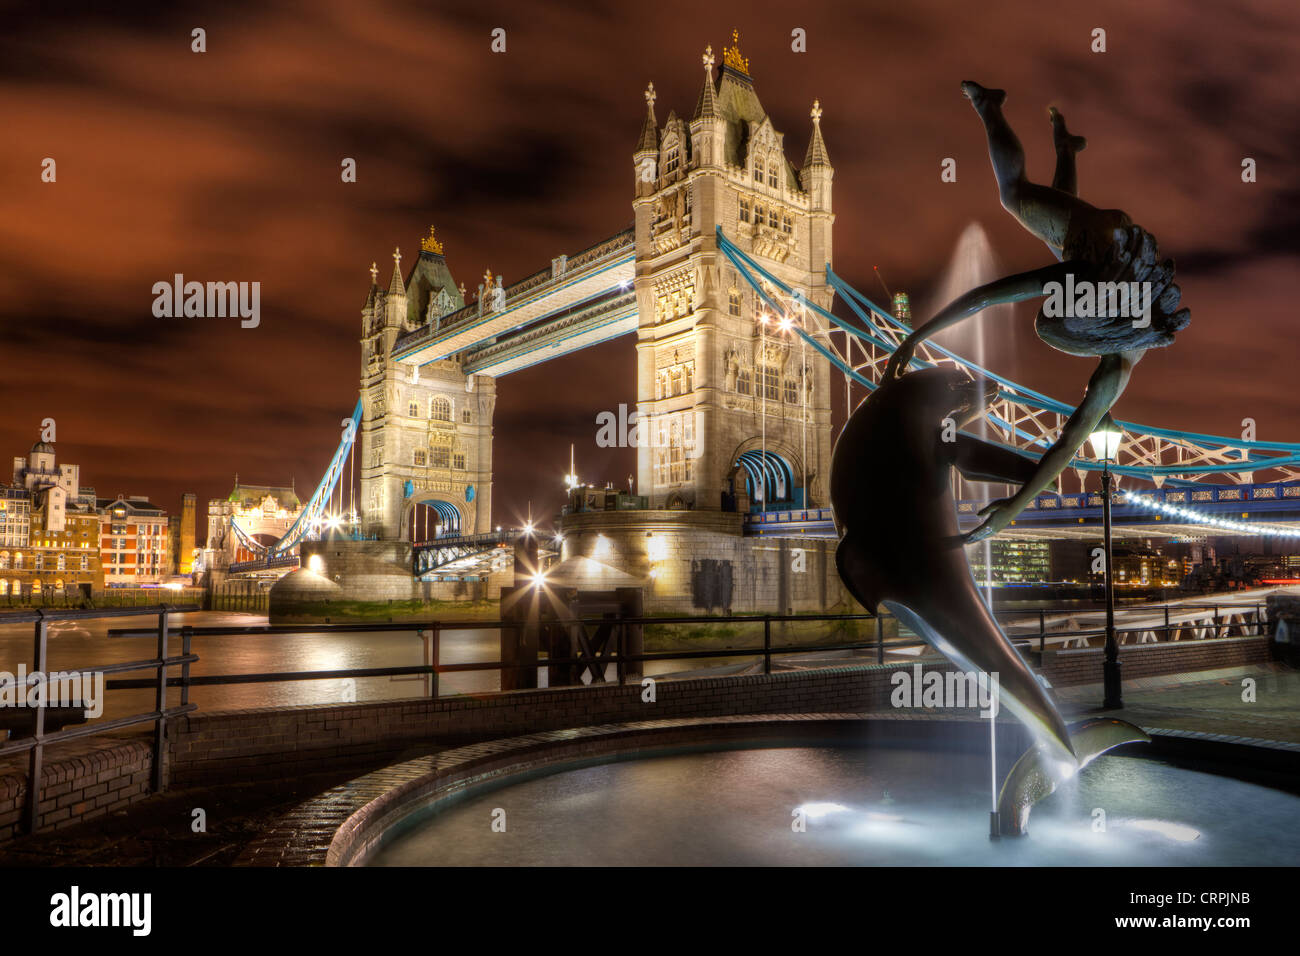 David Wynne's 'Girl with a Dolphin' statue on the North bank of the River Thames by Tower Bridge. - Stock Image